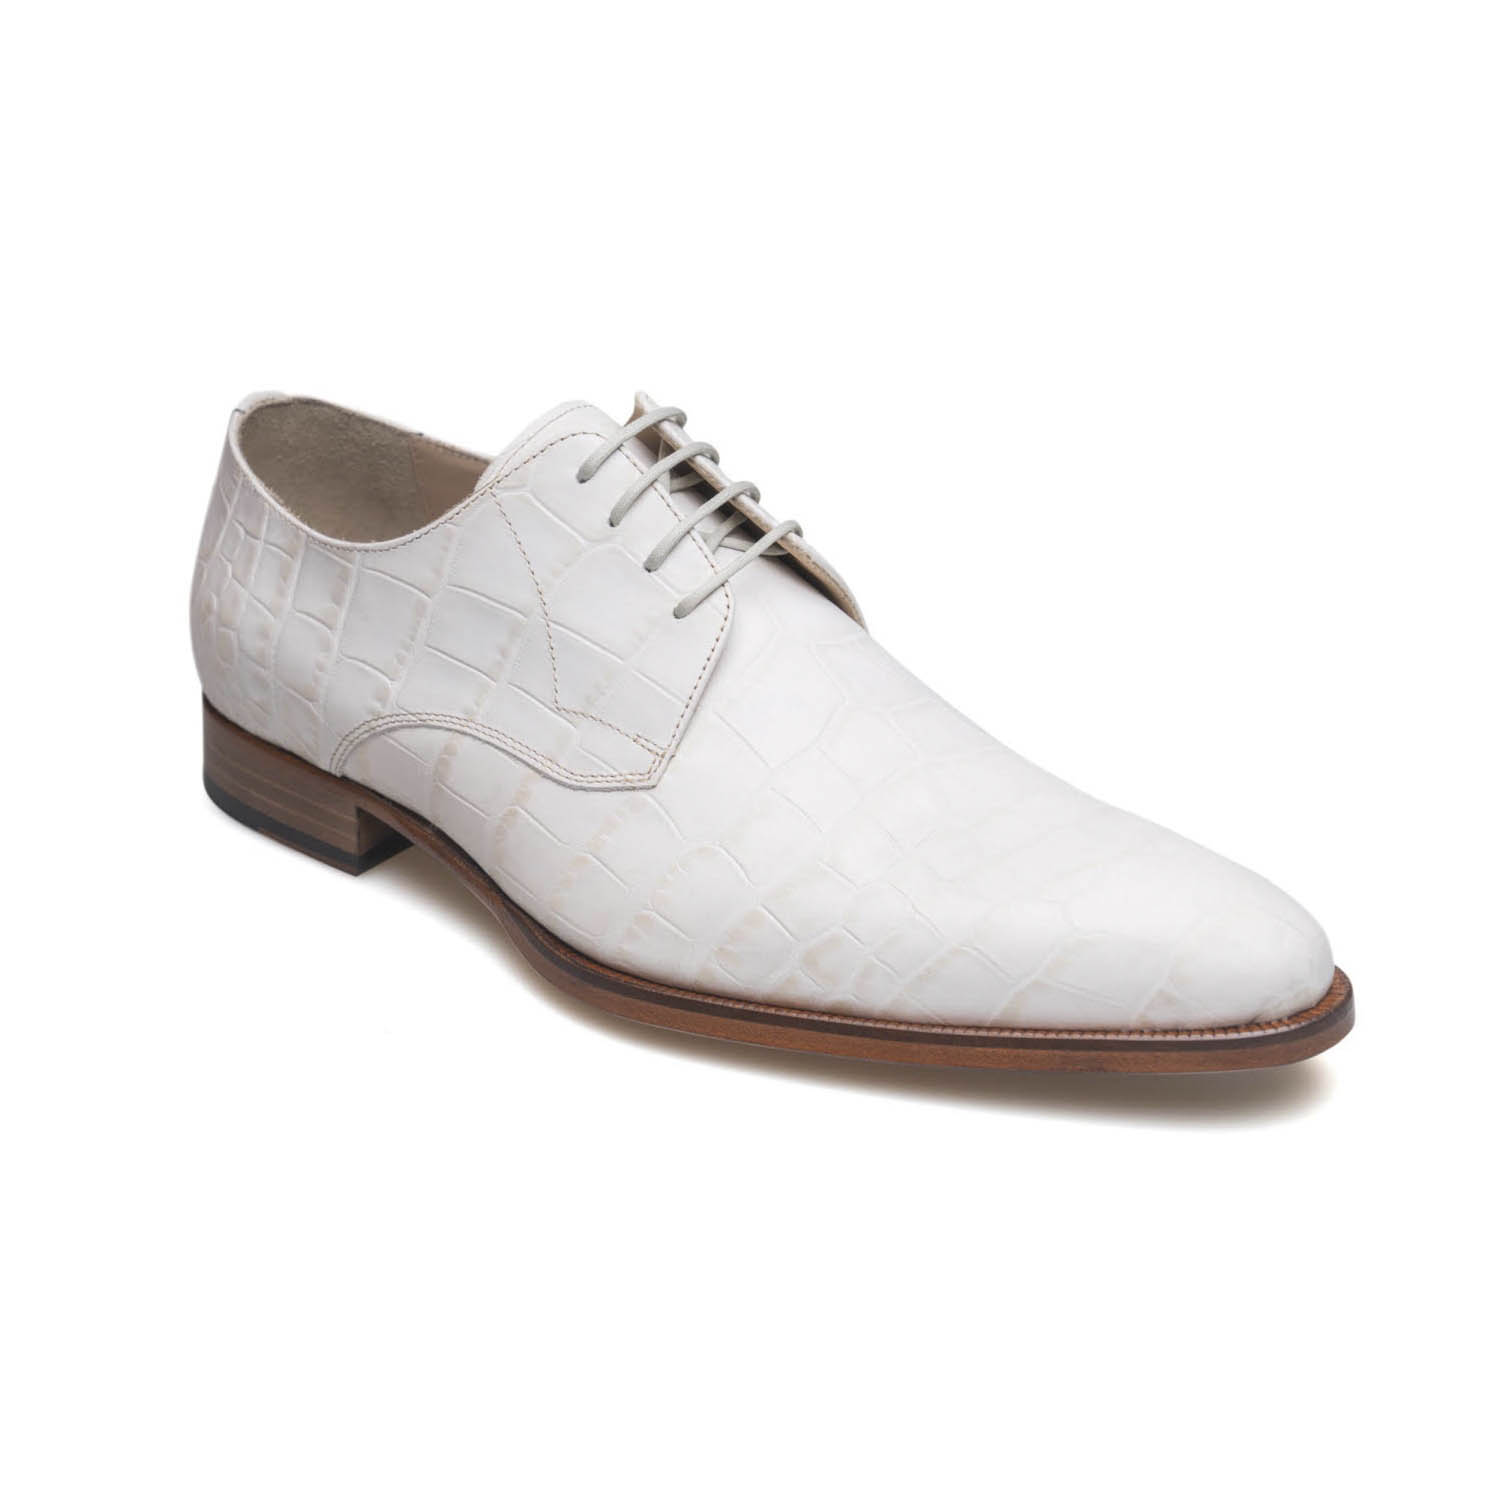 schoenen-ivoor-cuba-white-dark-off-white-025000409